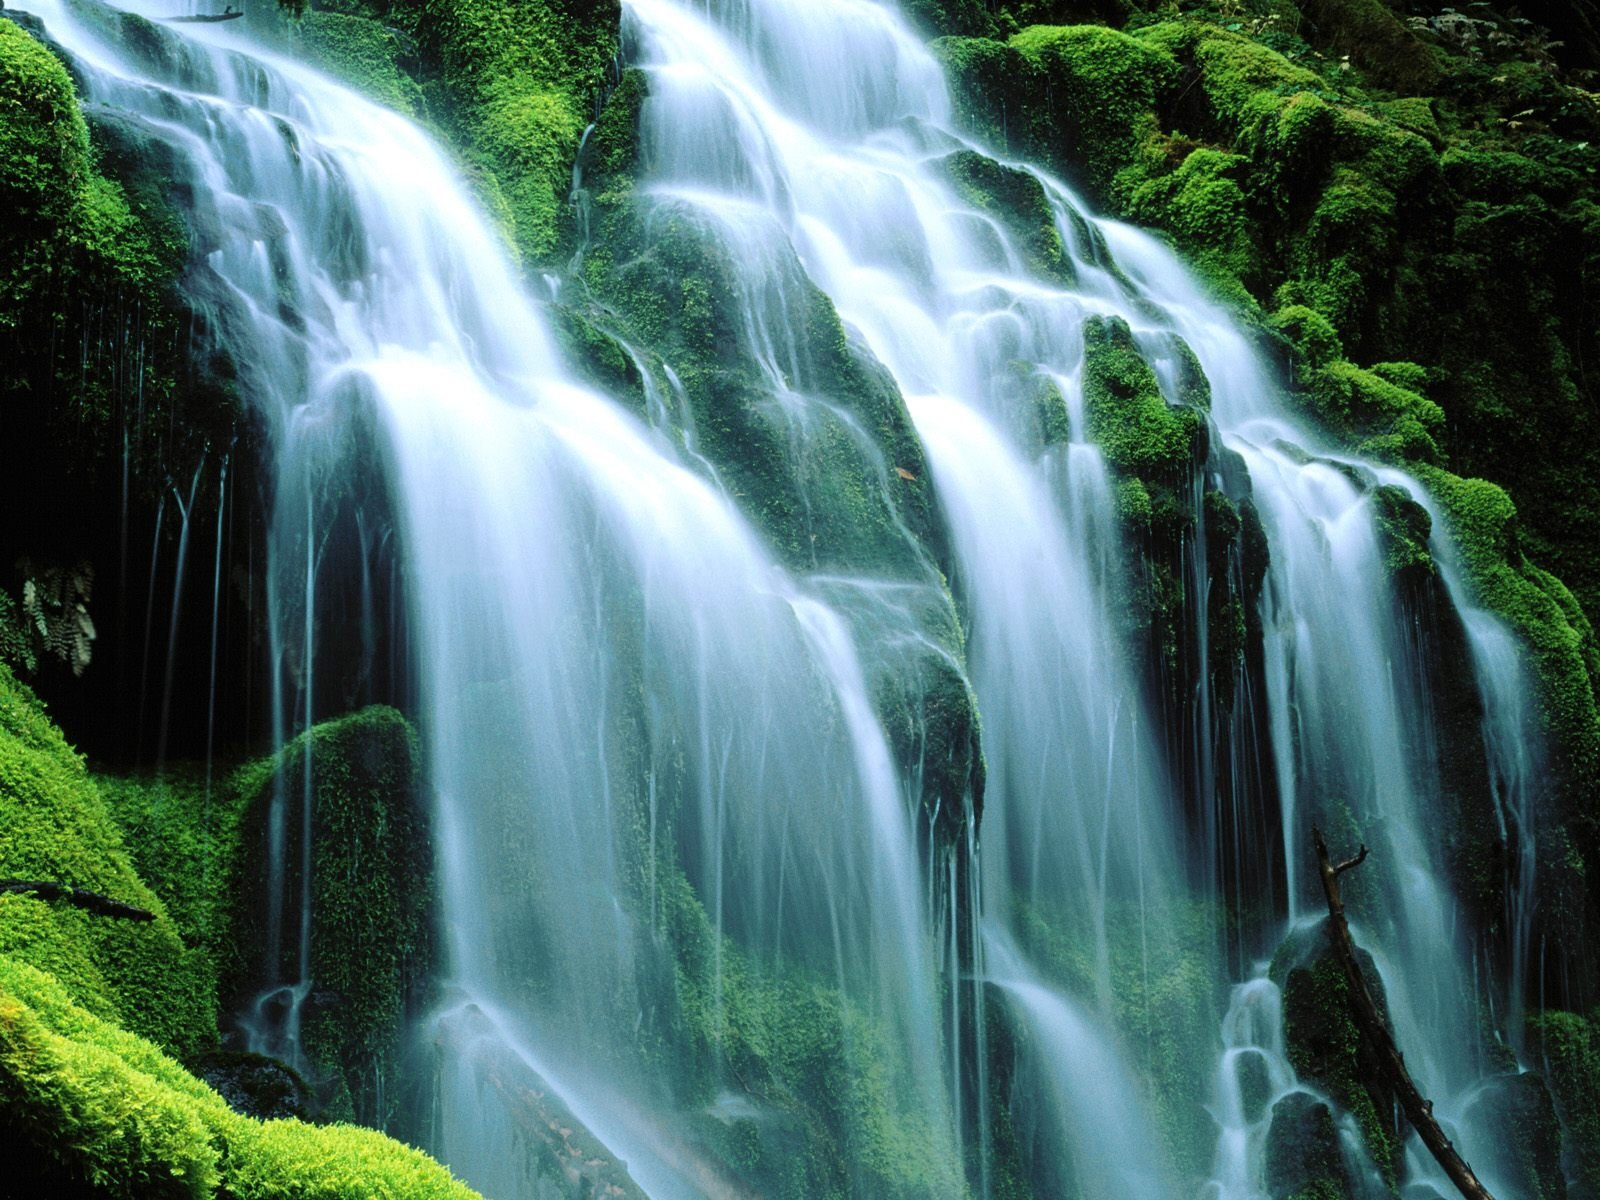 waterfall wallpapers category of hd wallpapers screensavers 1600x1200